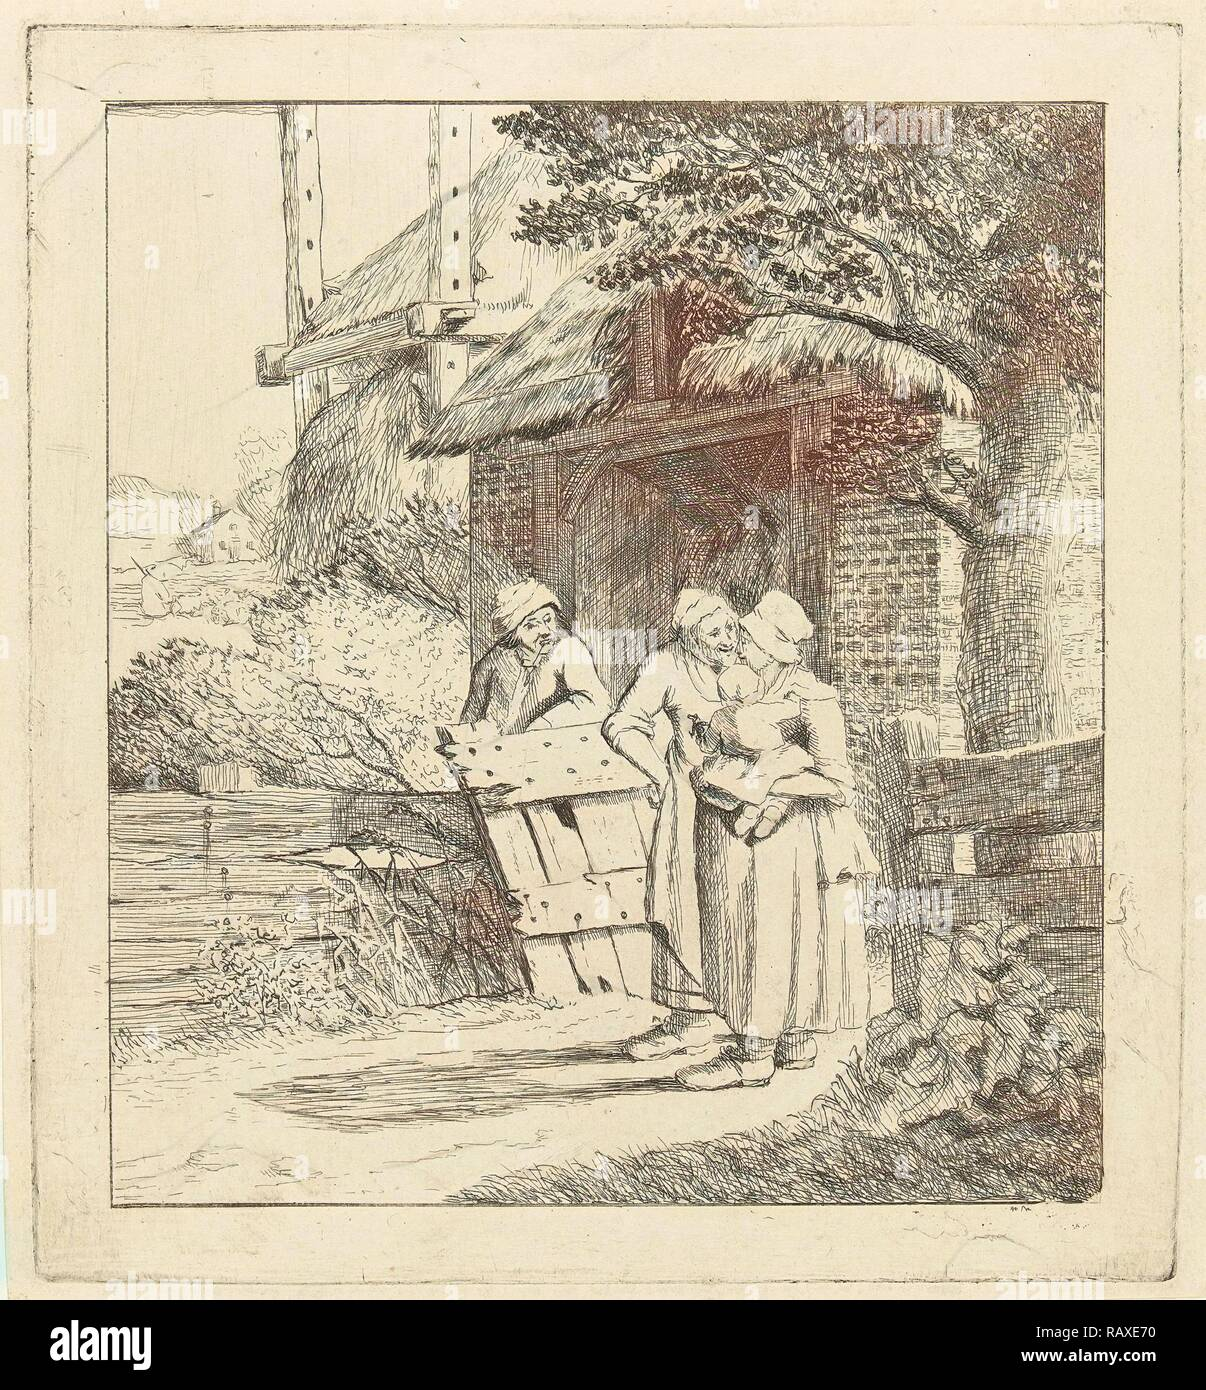 Two women and a man on a farm, print maker: Marie Lambertine Coclers, 1776 - 1815. Reimagined by Gibon. Classic art reimagined - Stock Image